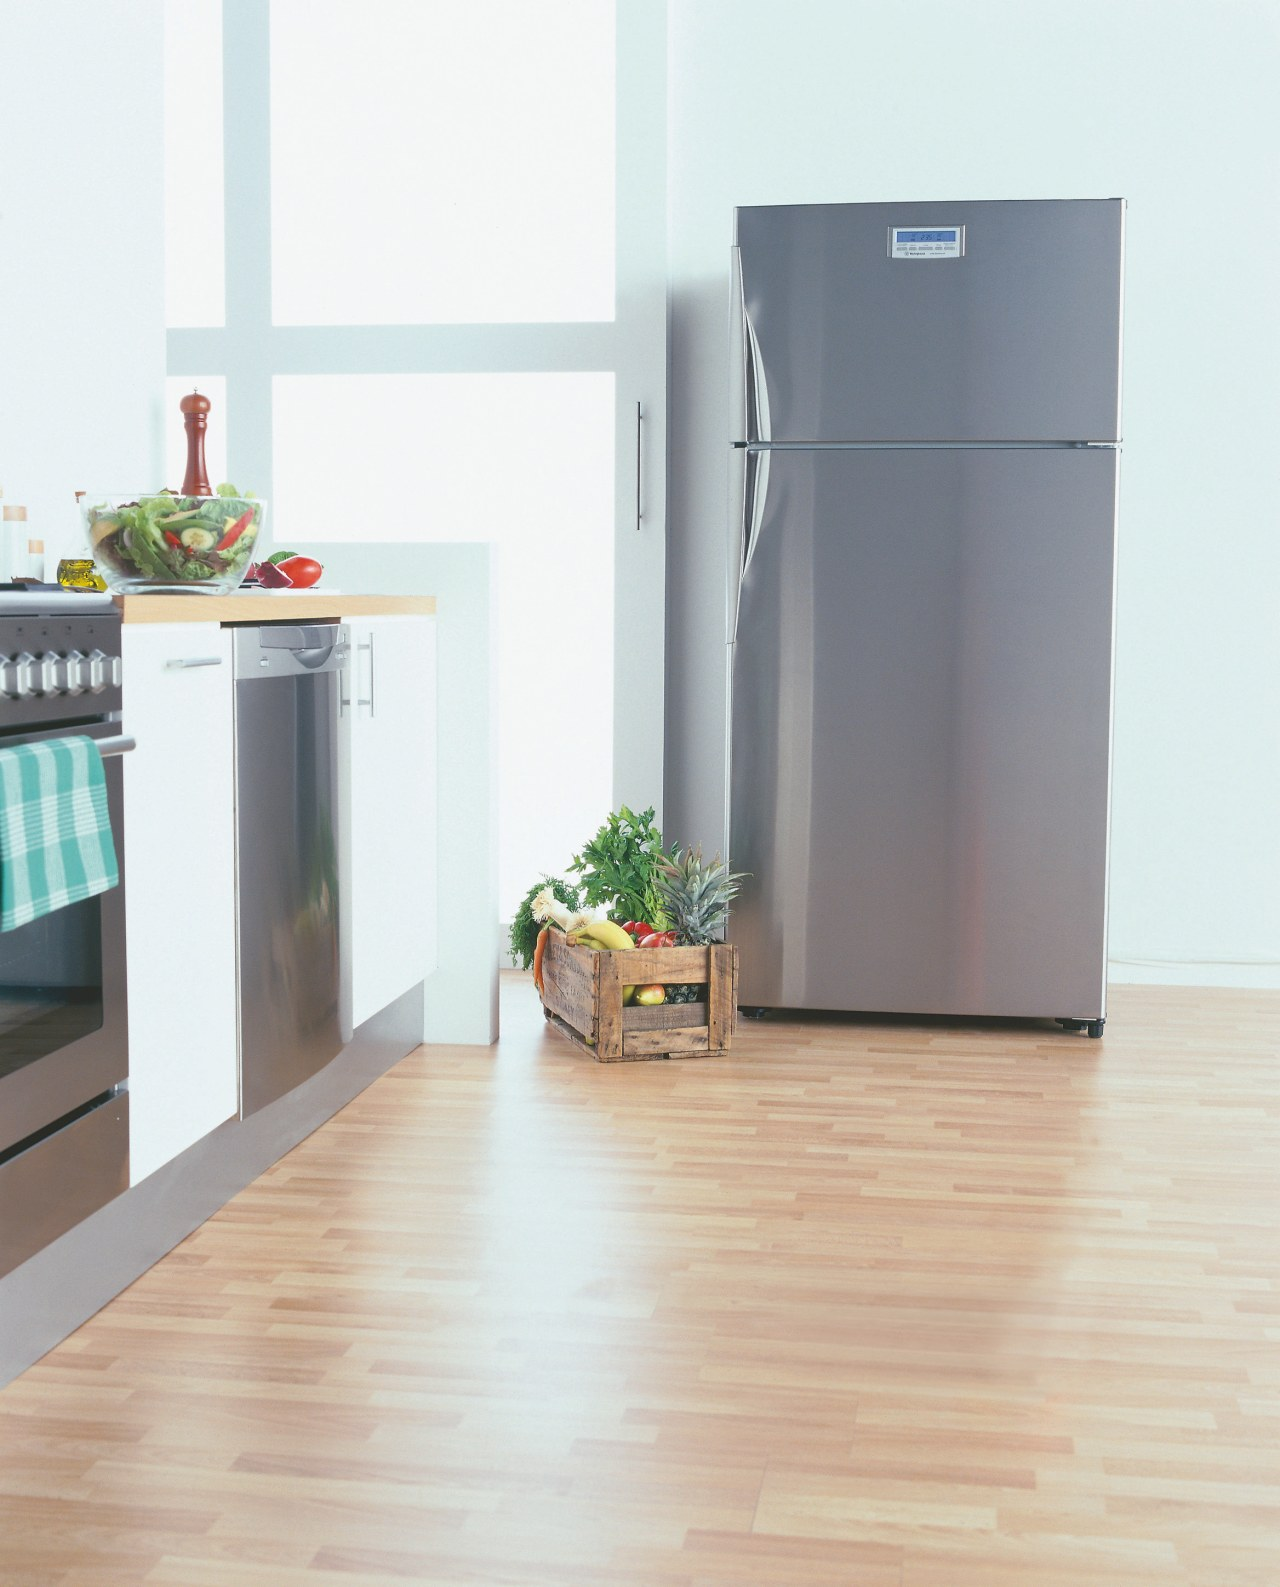 Stylish Refrigerator in kitchen setting. floor, flooring, hardwood, home appliance, kitchen appliance, laminate flooring, major appliance, product, refrigerator, white, gray